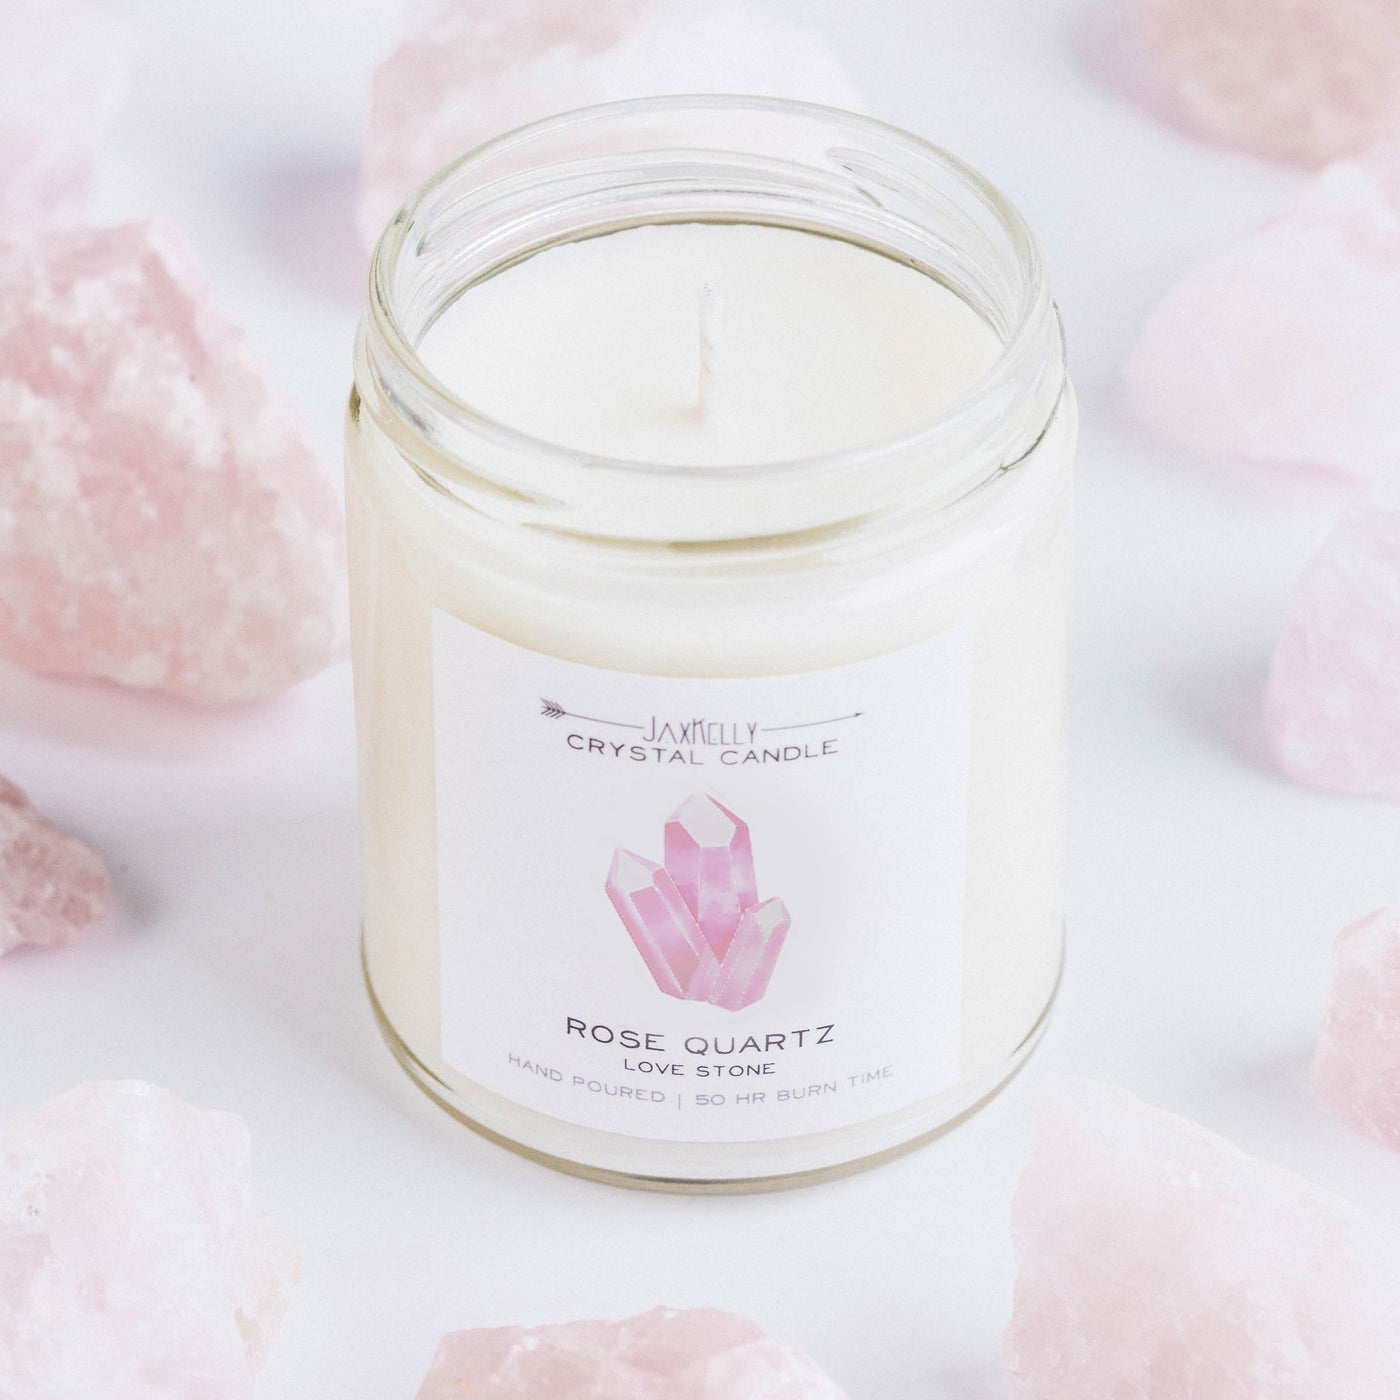 Hidden Crystal Candle, Love